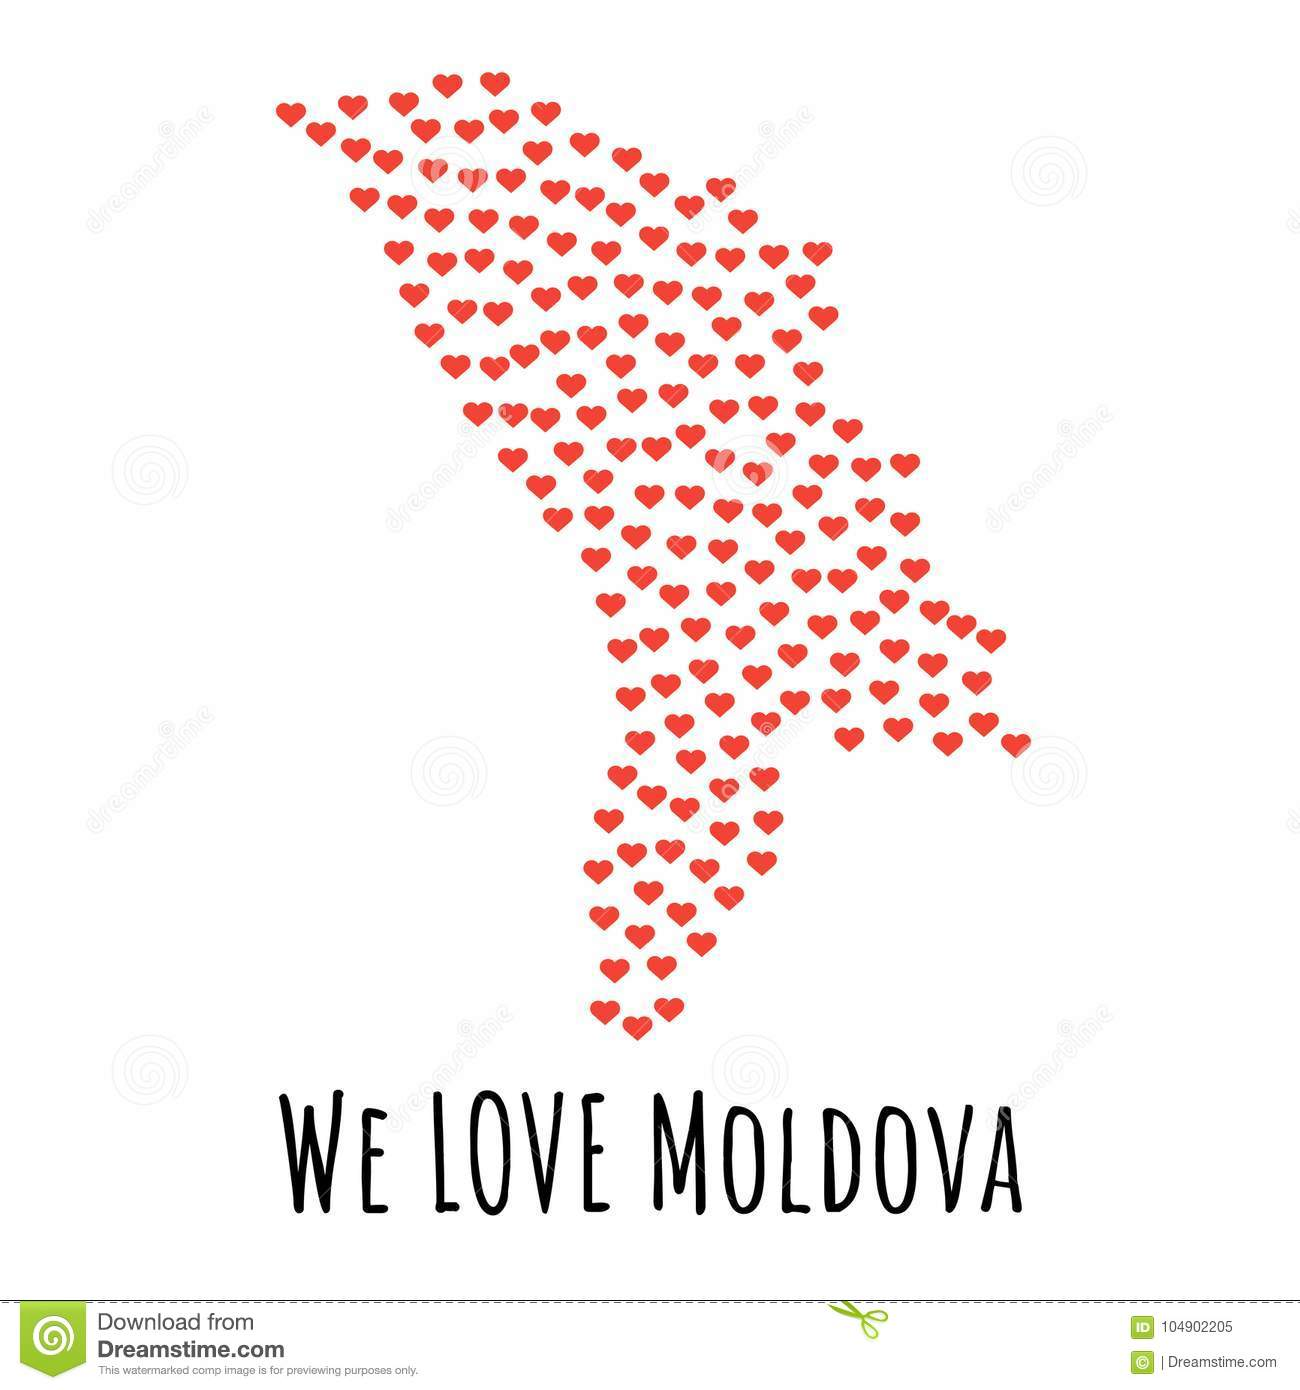 Moldova Map With Red Hearts Symbol Of Love Abstract Background